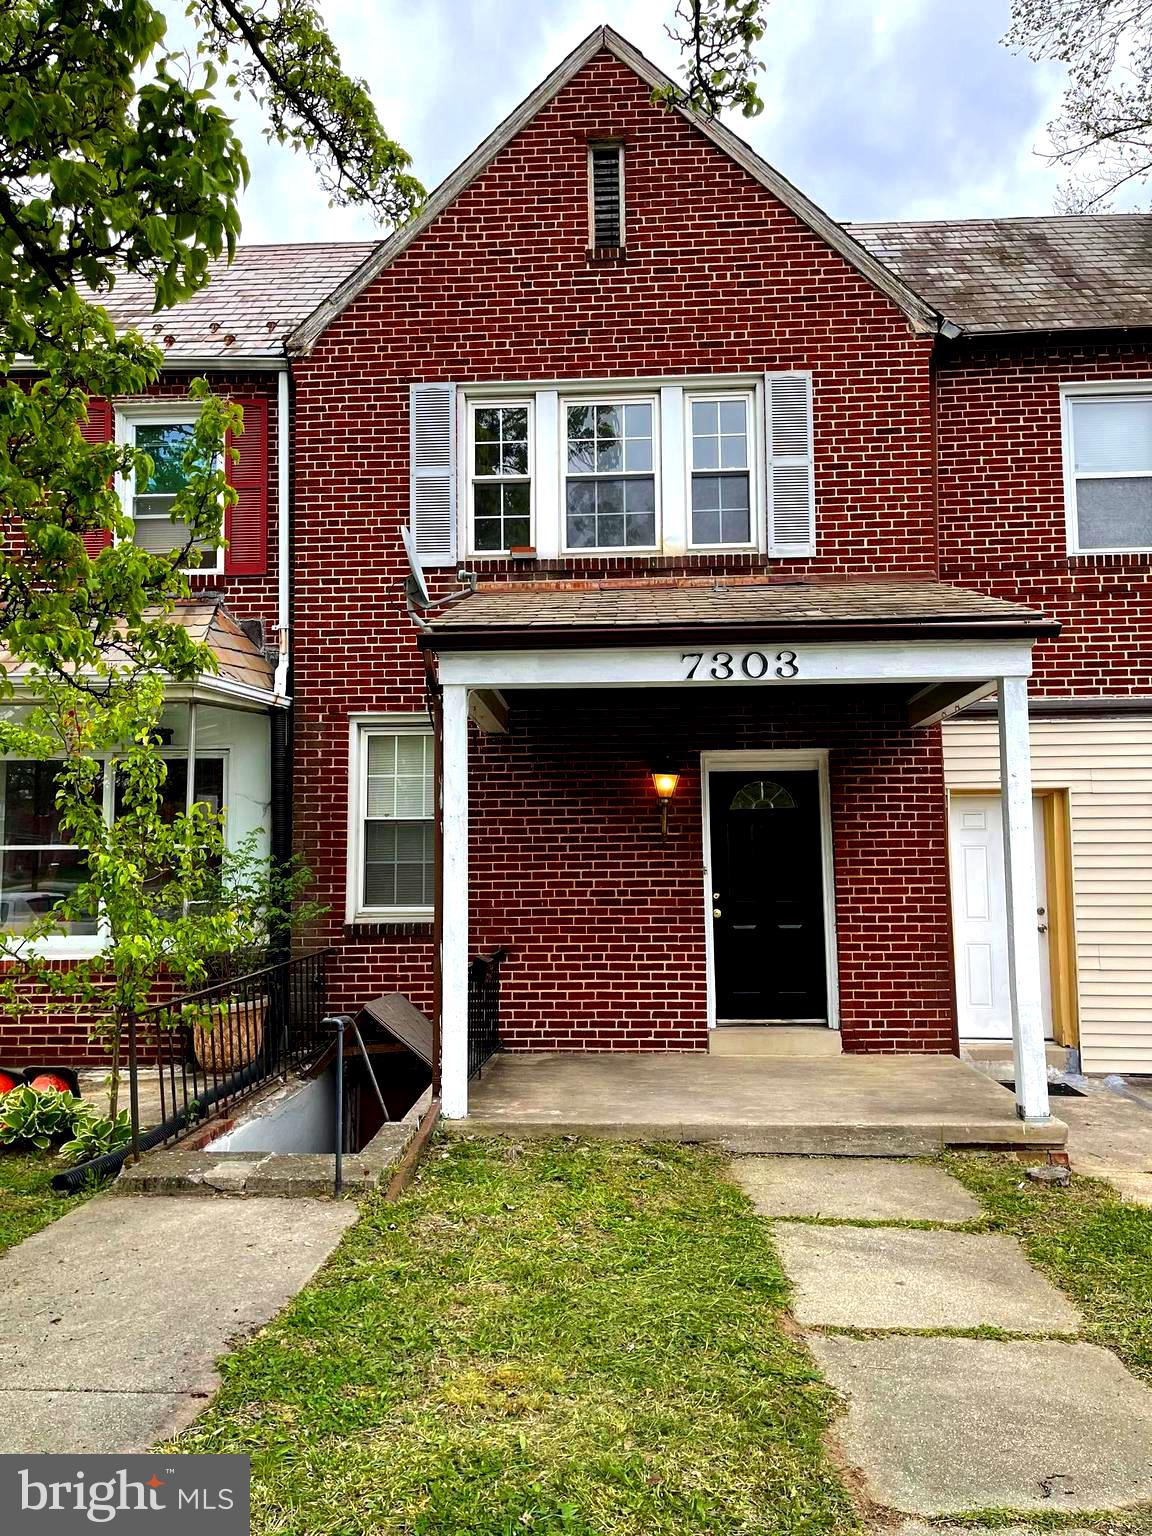 7303 HARFORD ROAD, BALTIMORE, Maryland 21234, 3 Bedrooms Bedrooms, ,2 BathroomsBathrooms,Townhouse,For Sale,7303 HARFORD ROAD,MDBA548538